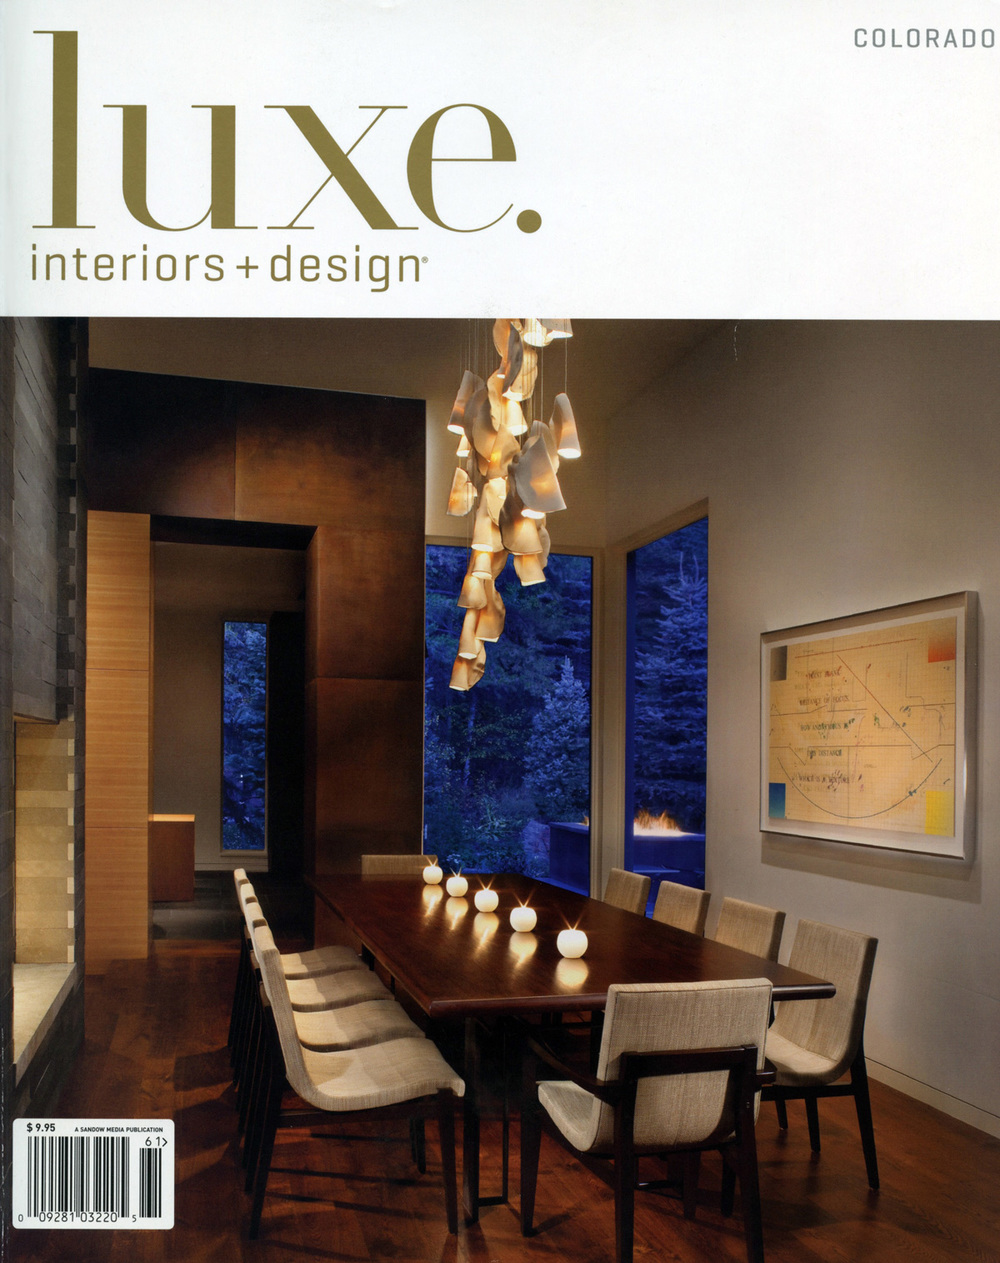 ATI---Dayton-LUXE-Colorado-Winter-2011-Cover.jpg